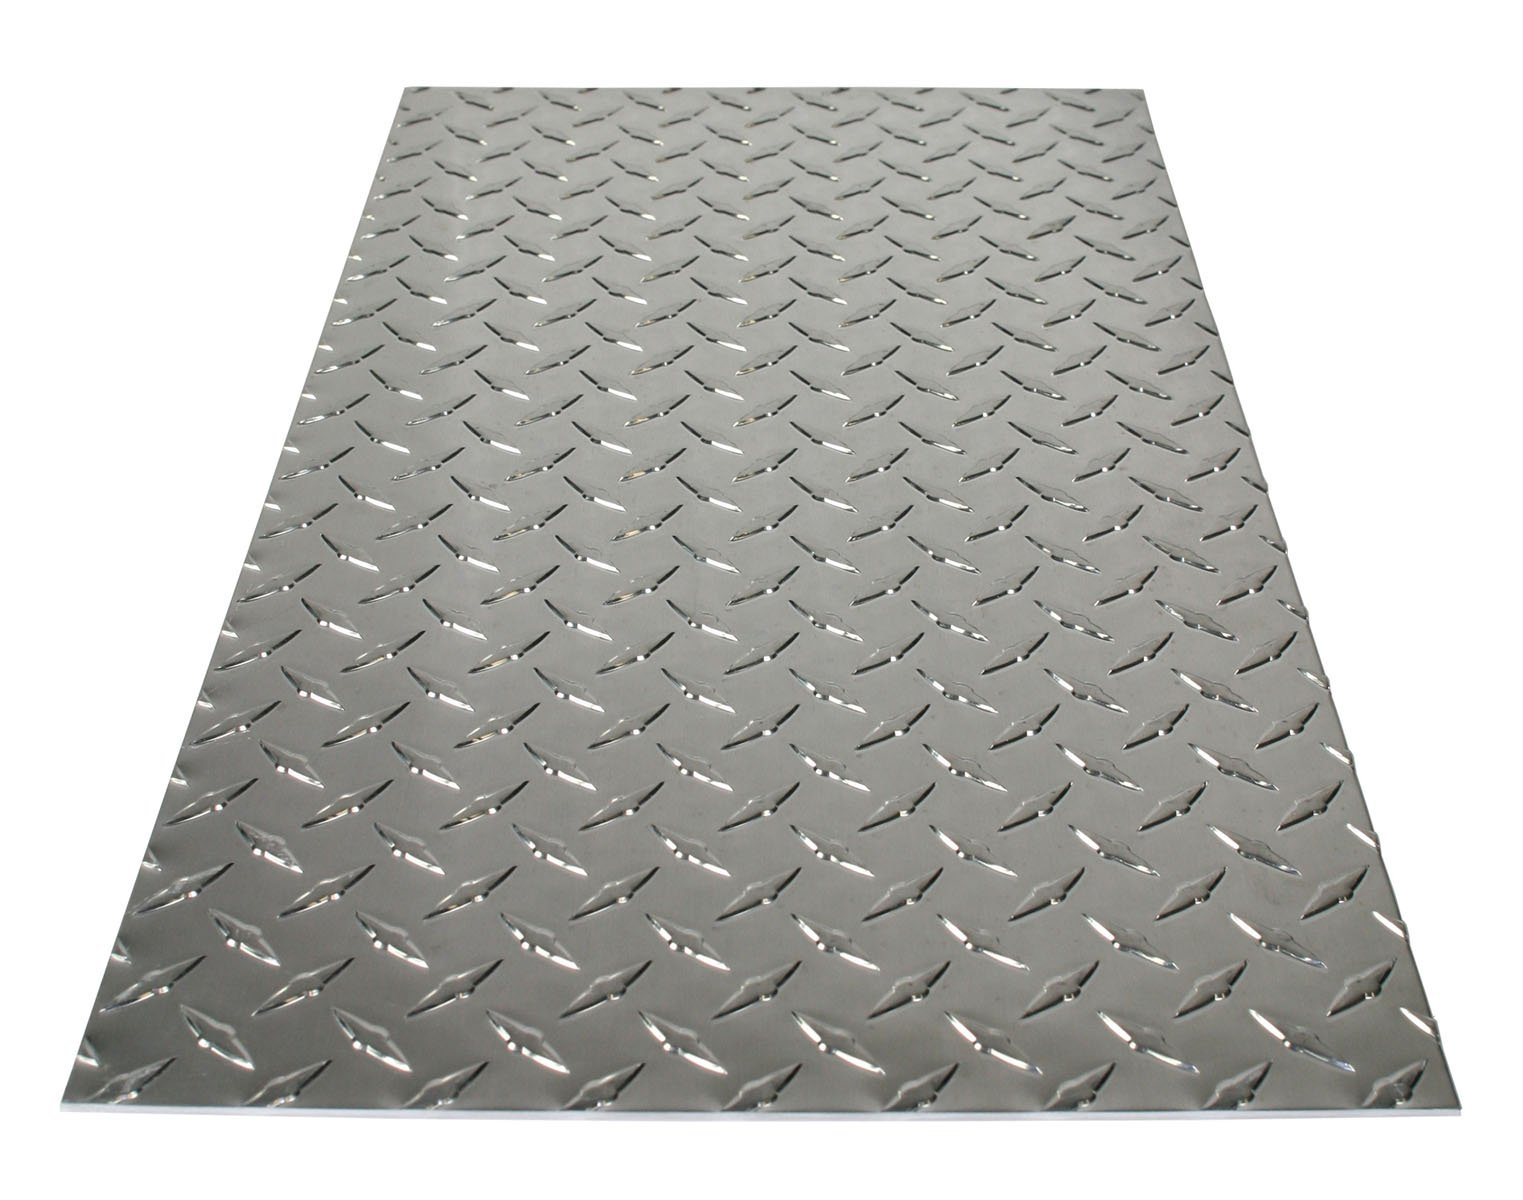 M-D Building Products 56022 11-7/8-Inch by 23-7/8-Inch .073-Inch Thick Polished Aluminum Treadplate